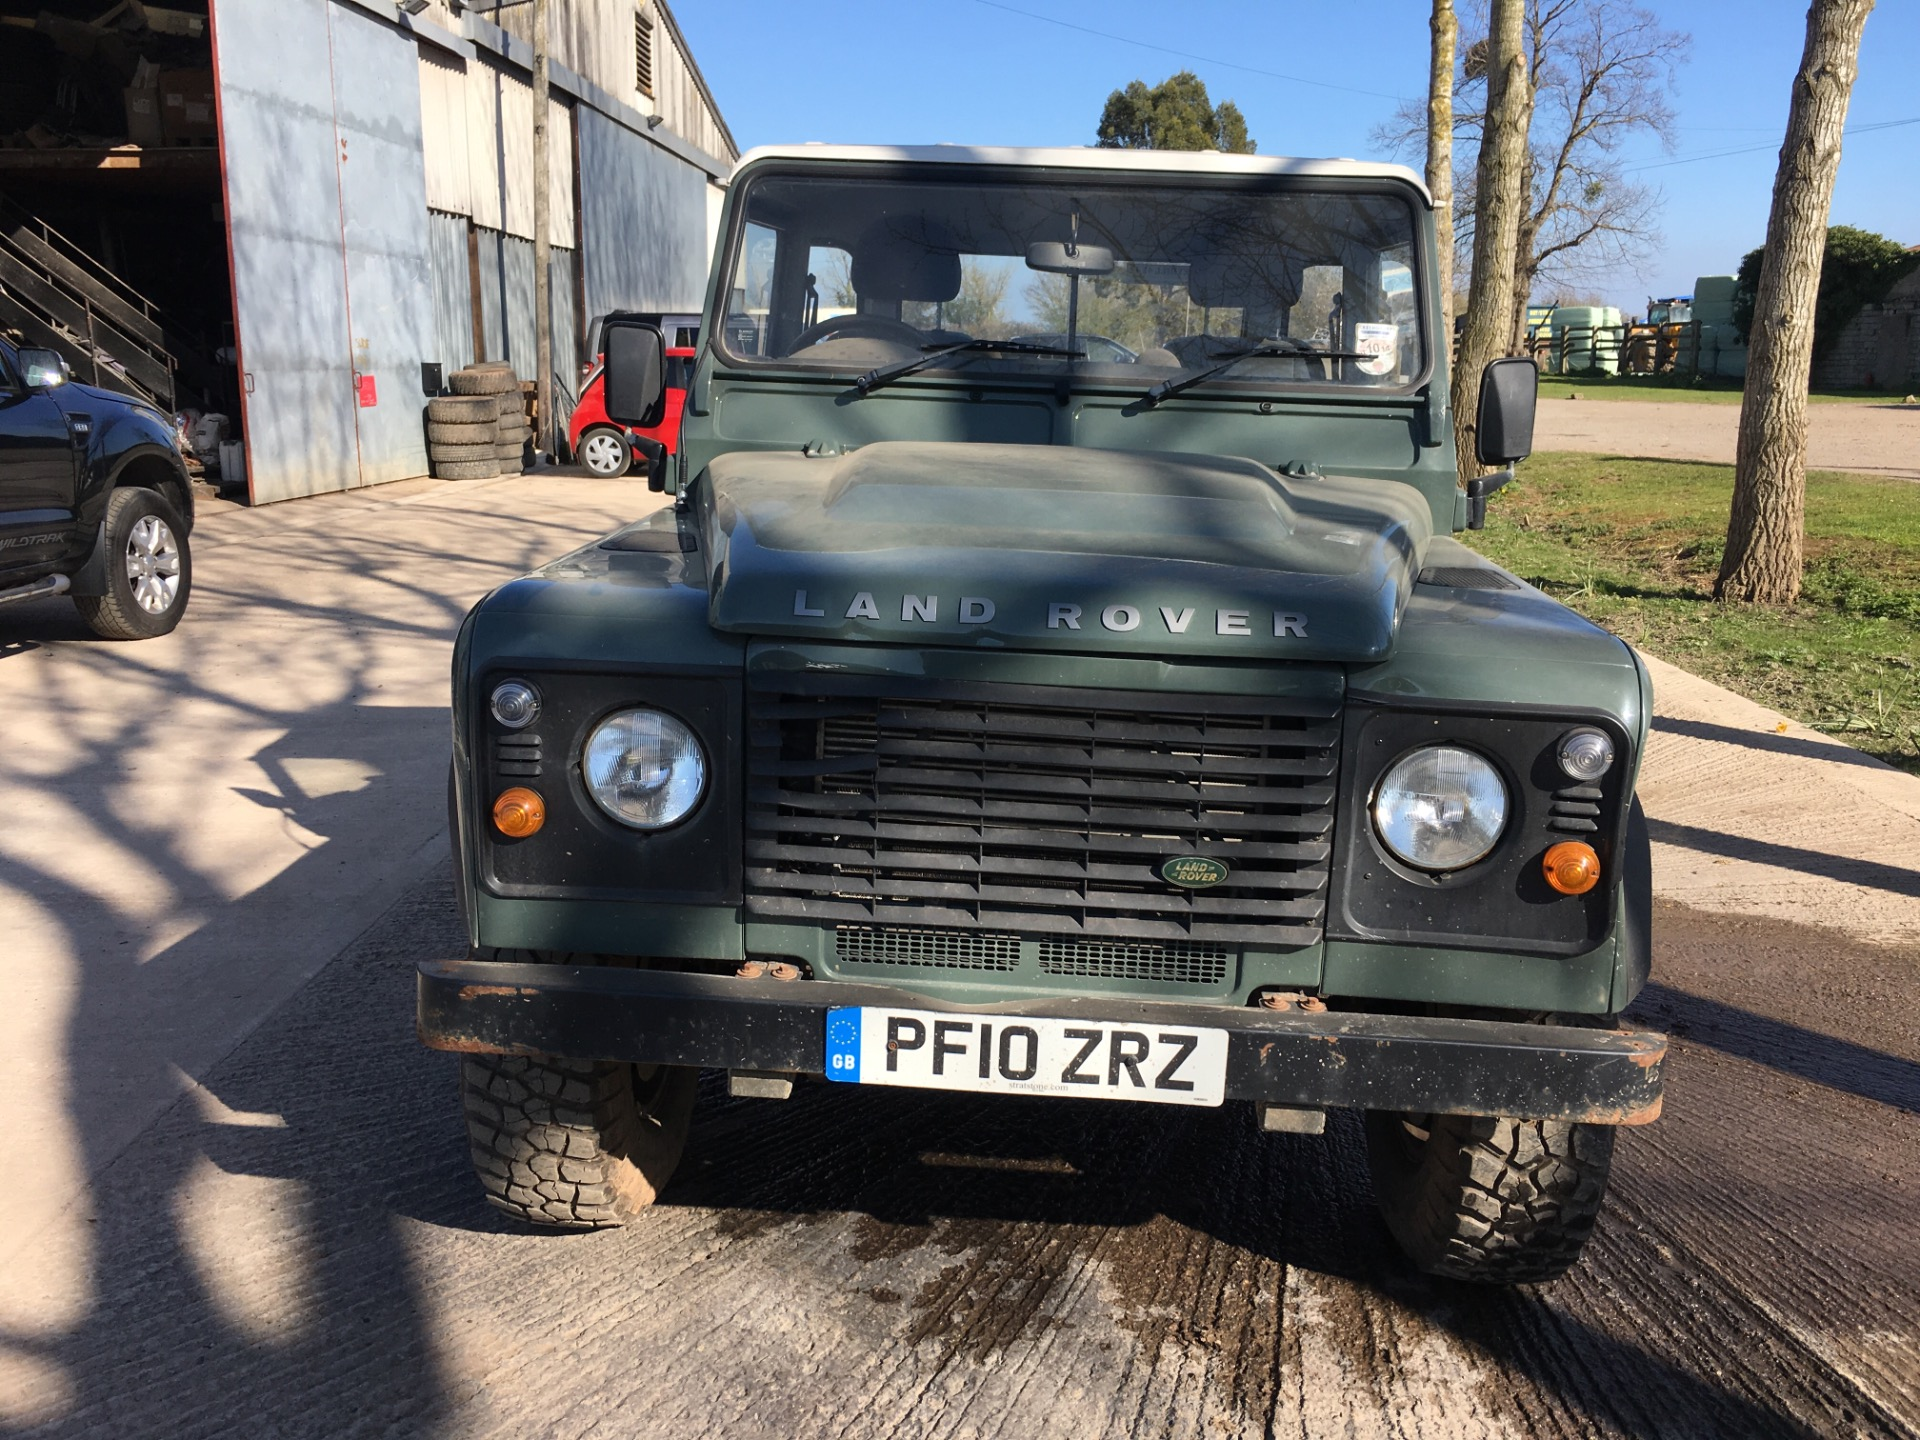 2010 (10) Land Rover Defender PickUp TDCi For Sale In Tirley, Gloucestershire